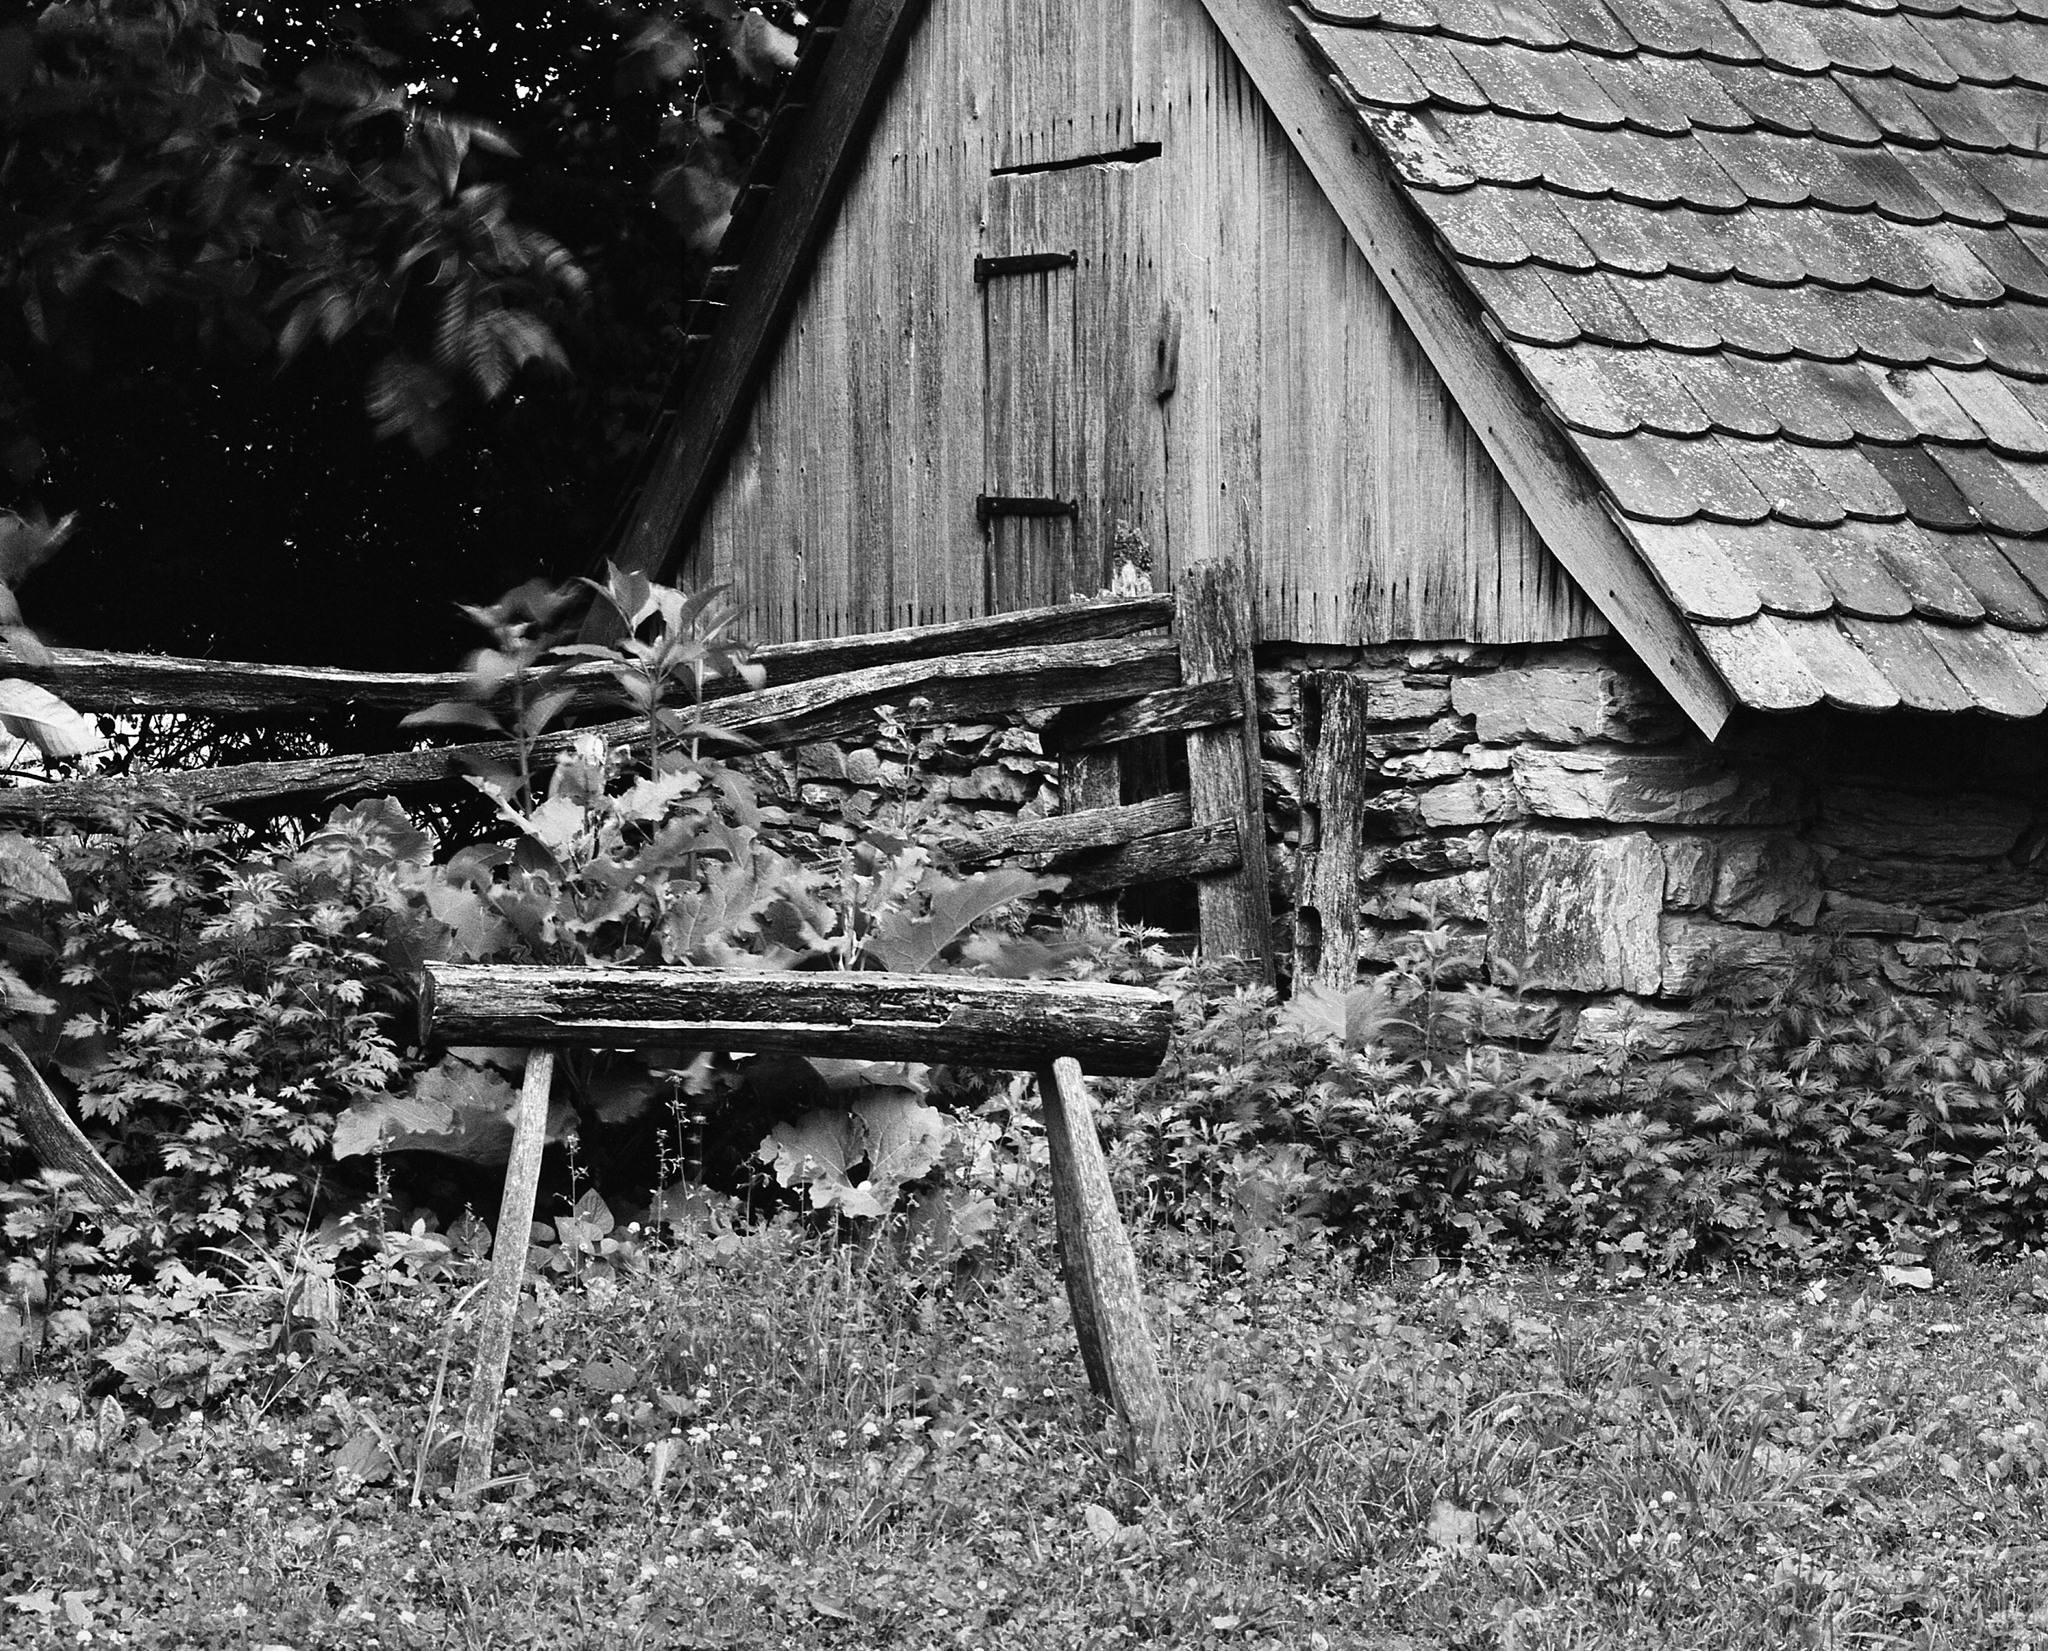 4x5_for_365_project_0170_Landis_Valley_sawhorse.png